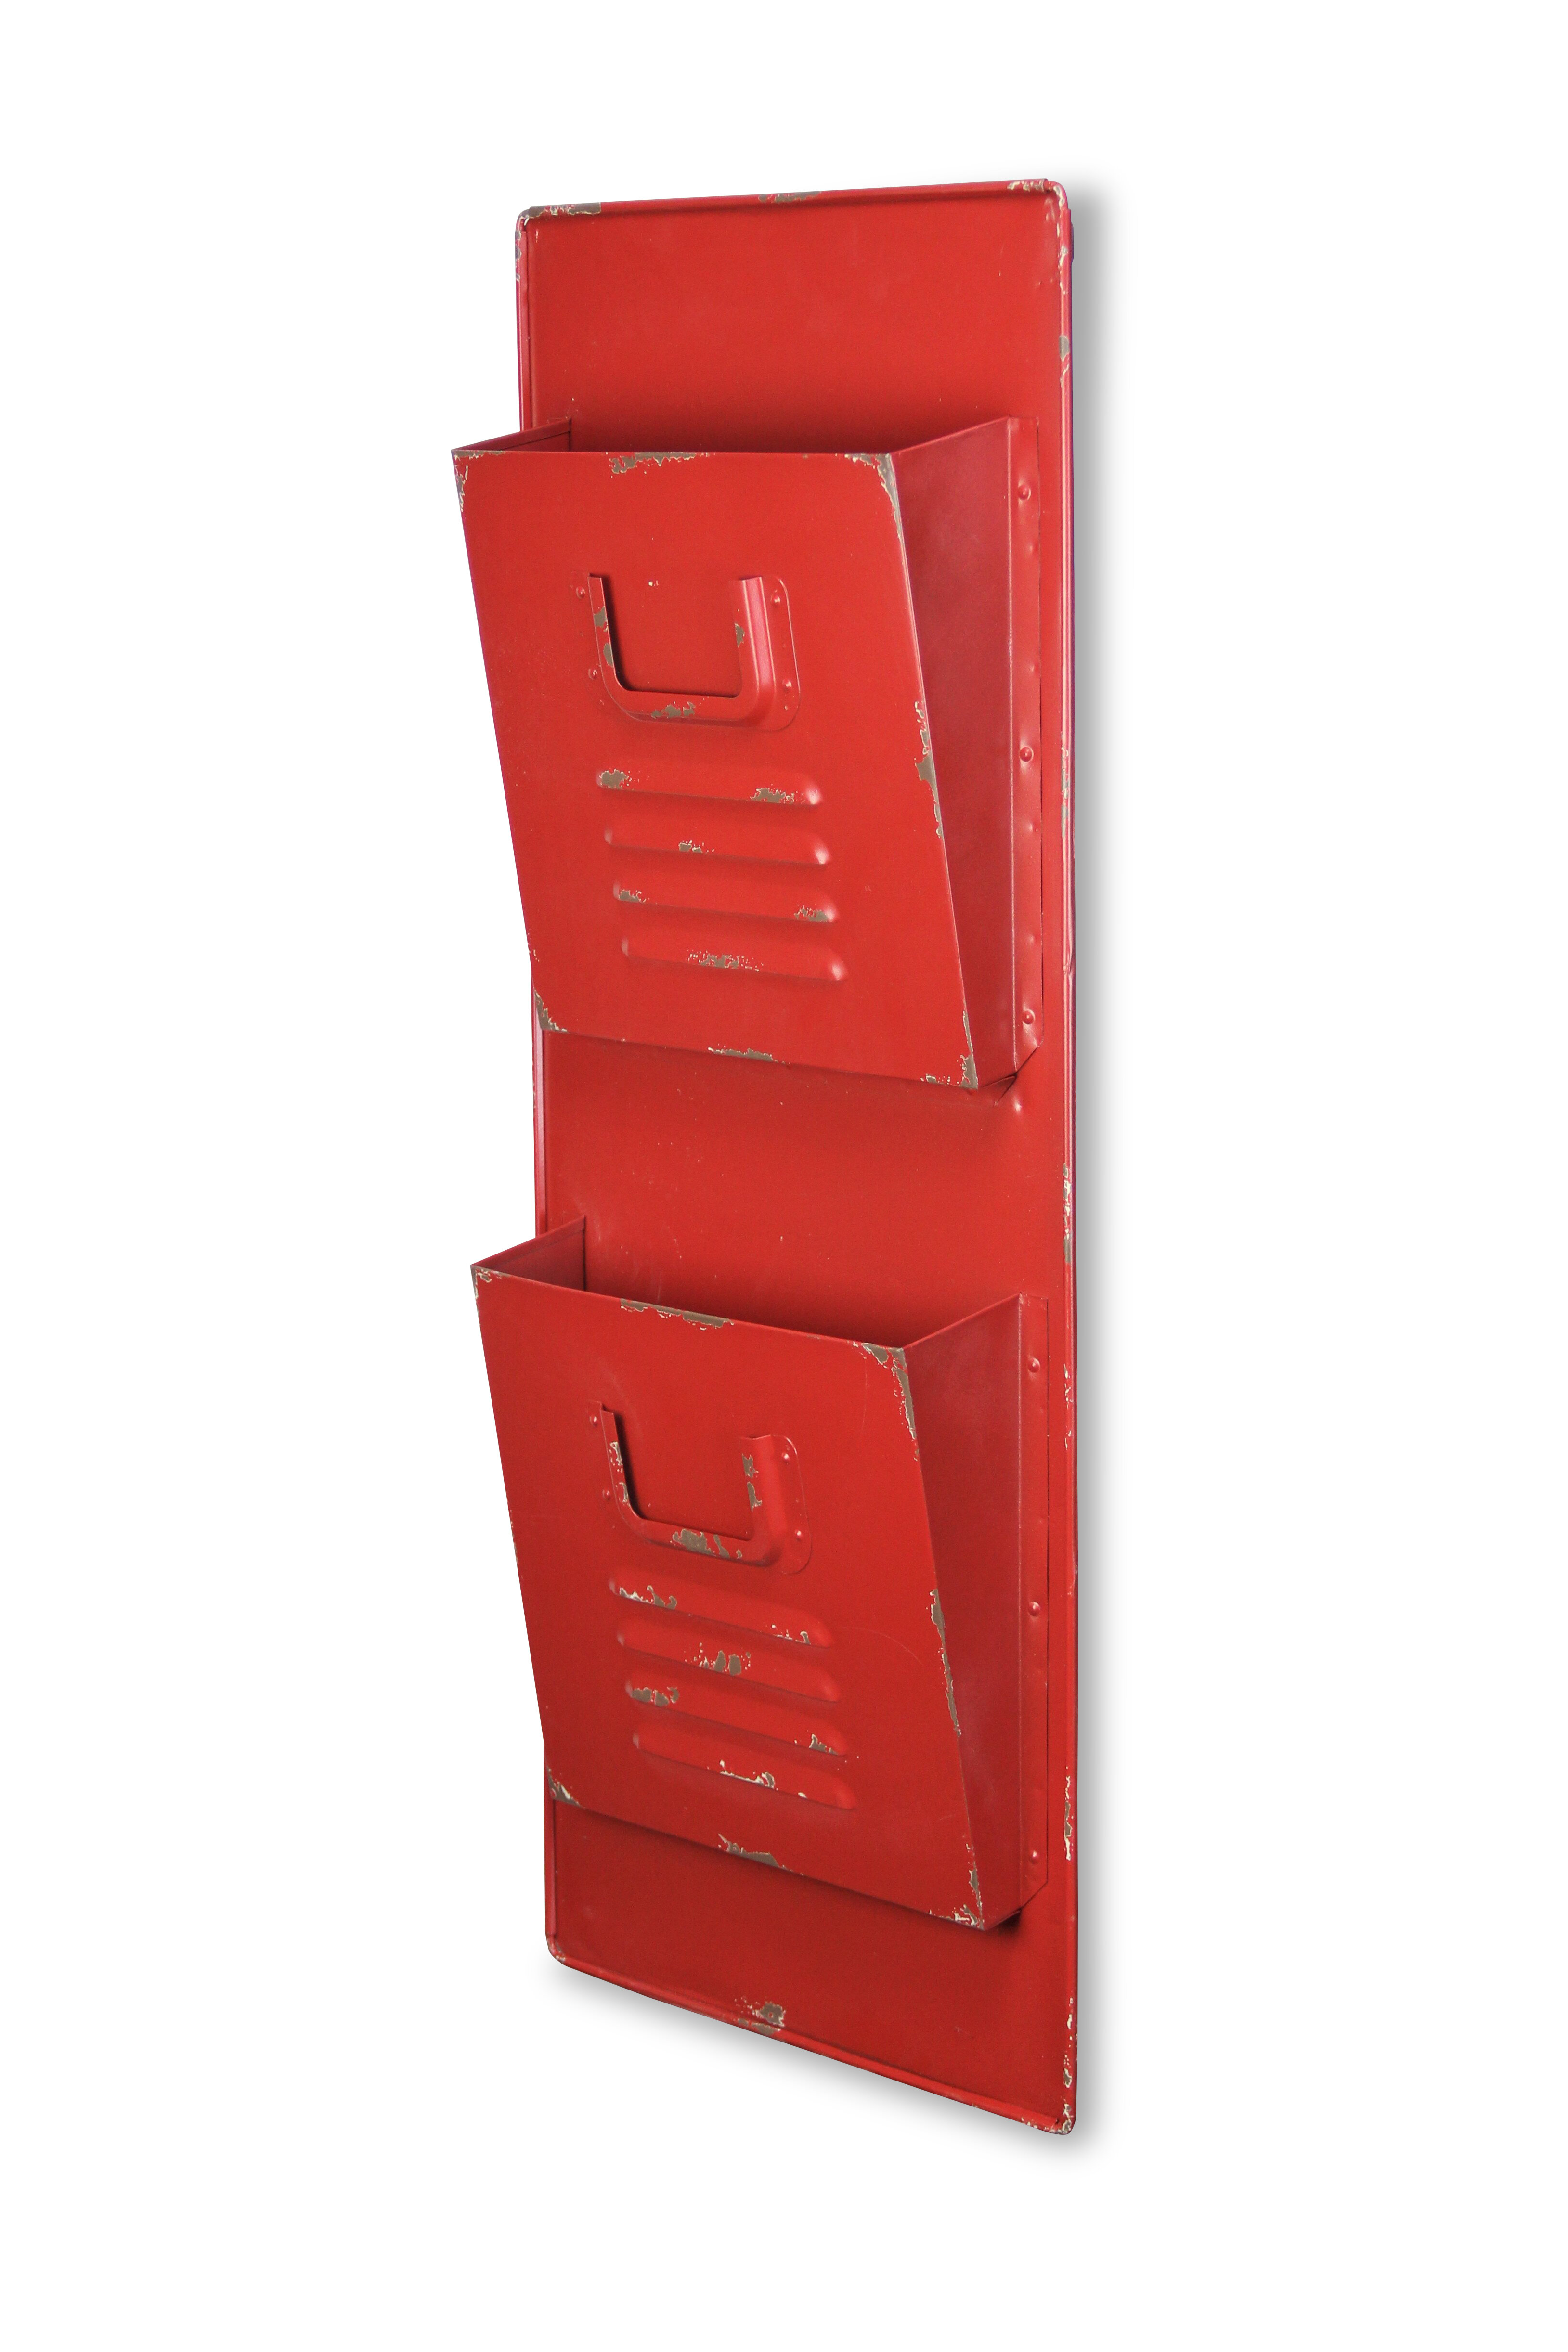 Cheungs 2 Tier File Pockets Wall Organizer With Mail Storage Reviews Wayfair